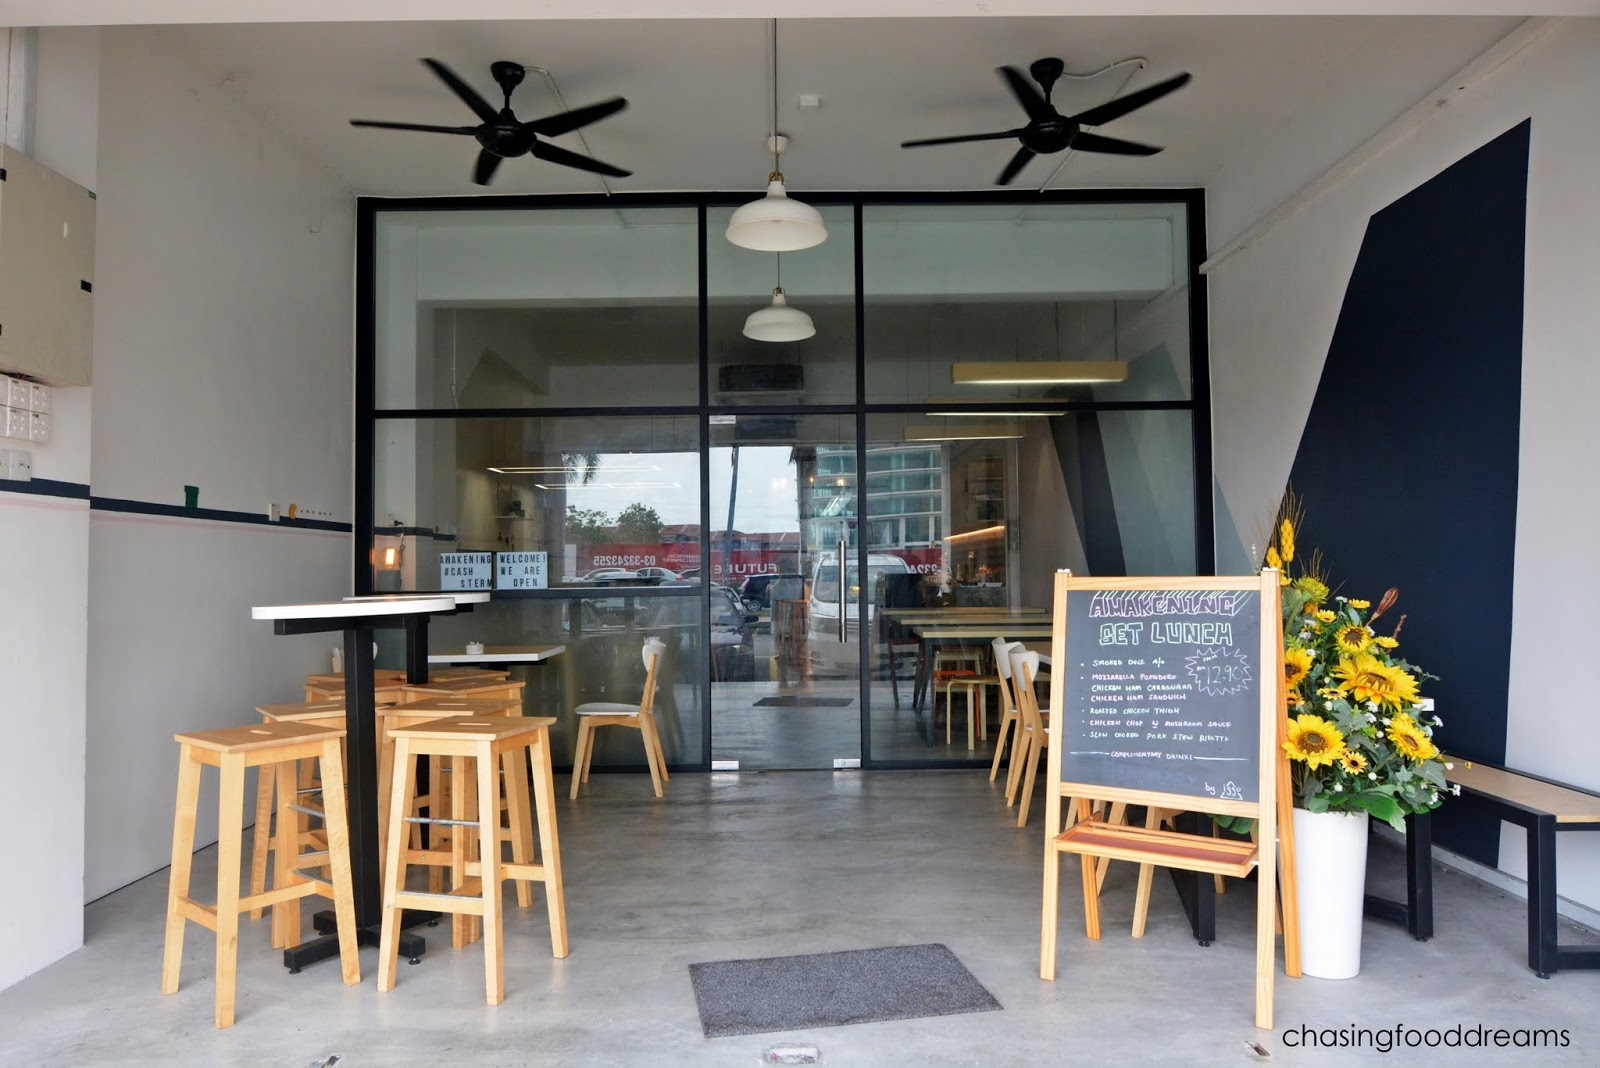 CHASING FOOD DREAMS Awakening Caf by Iggo  Klang